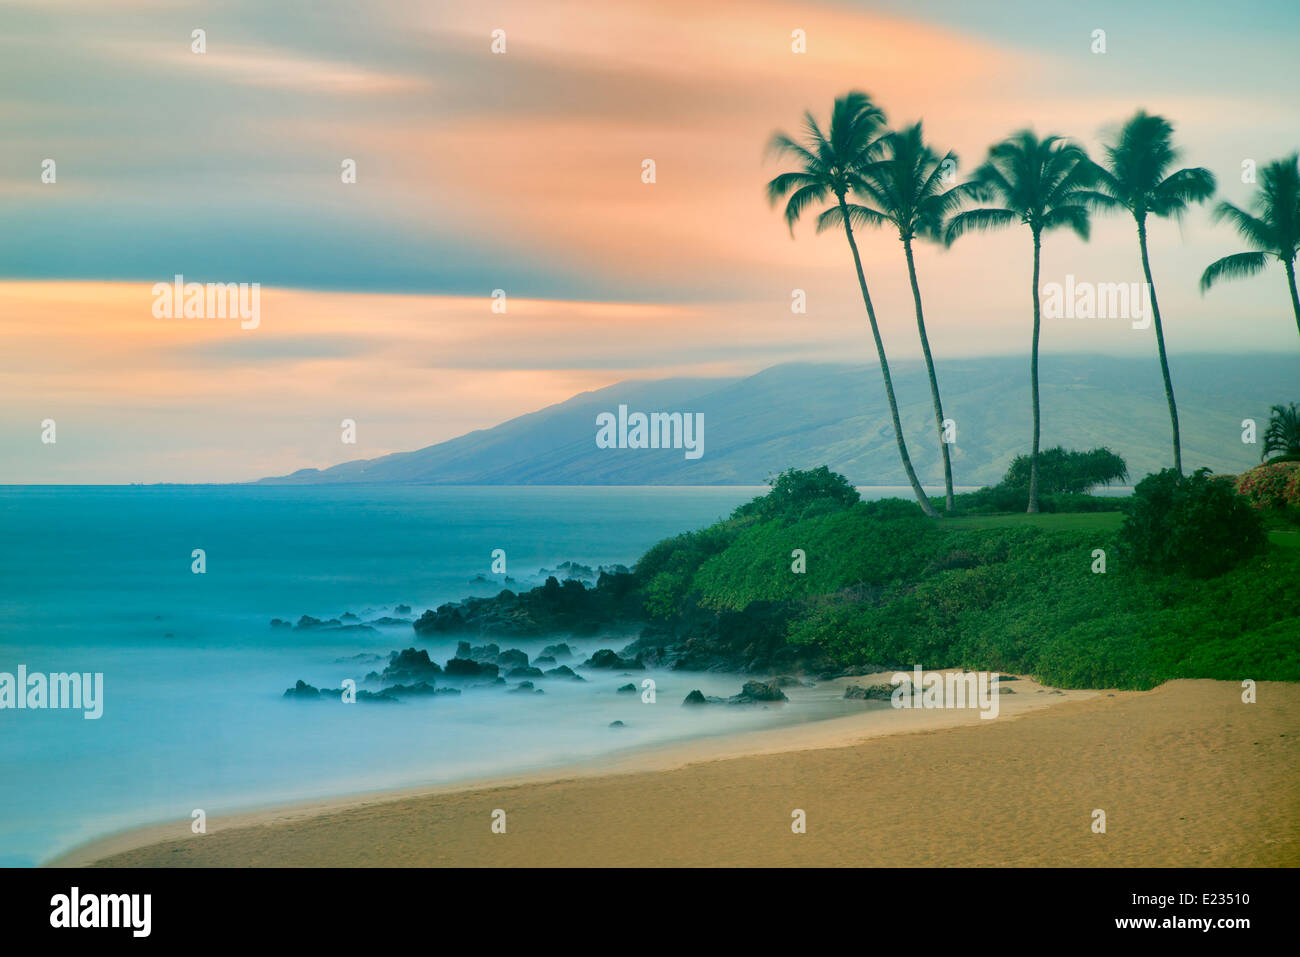 Maui coastline with sunset. Hawaii - Stock Image